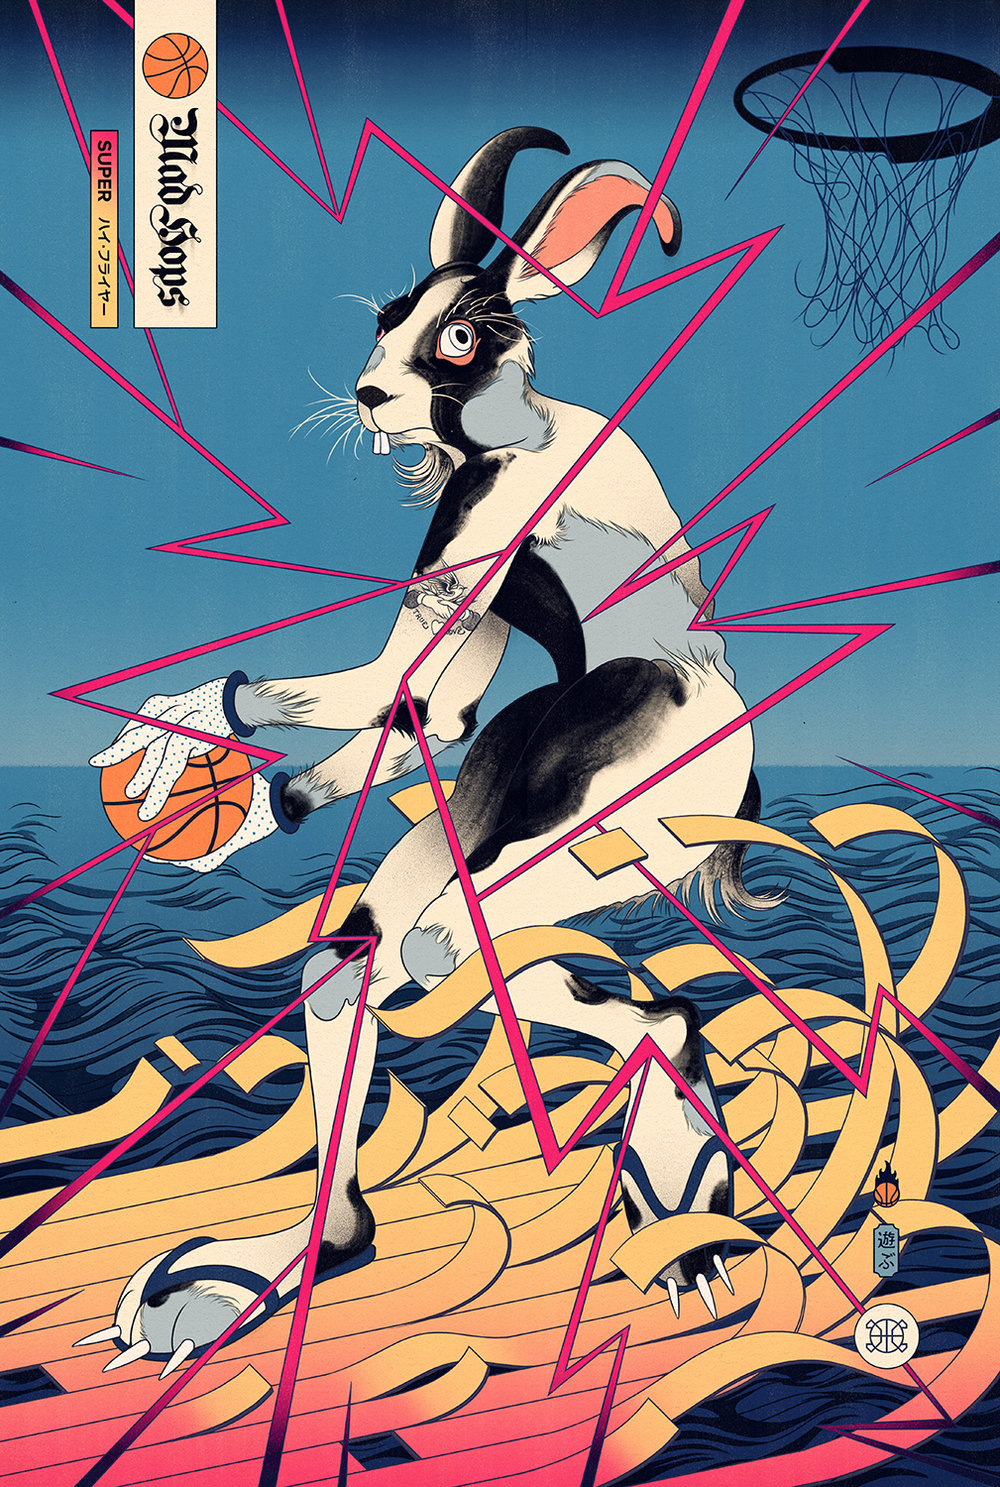 Edo Ball NBA Basketball Art - The Bunny.